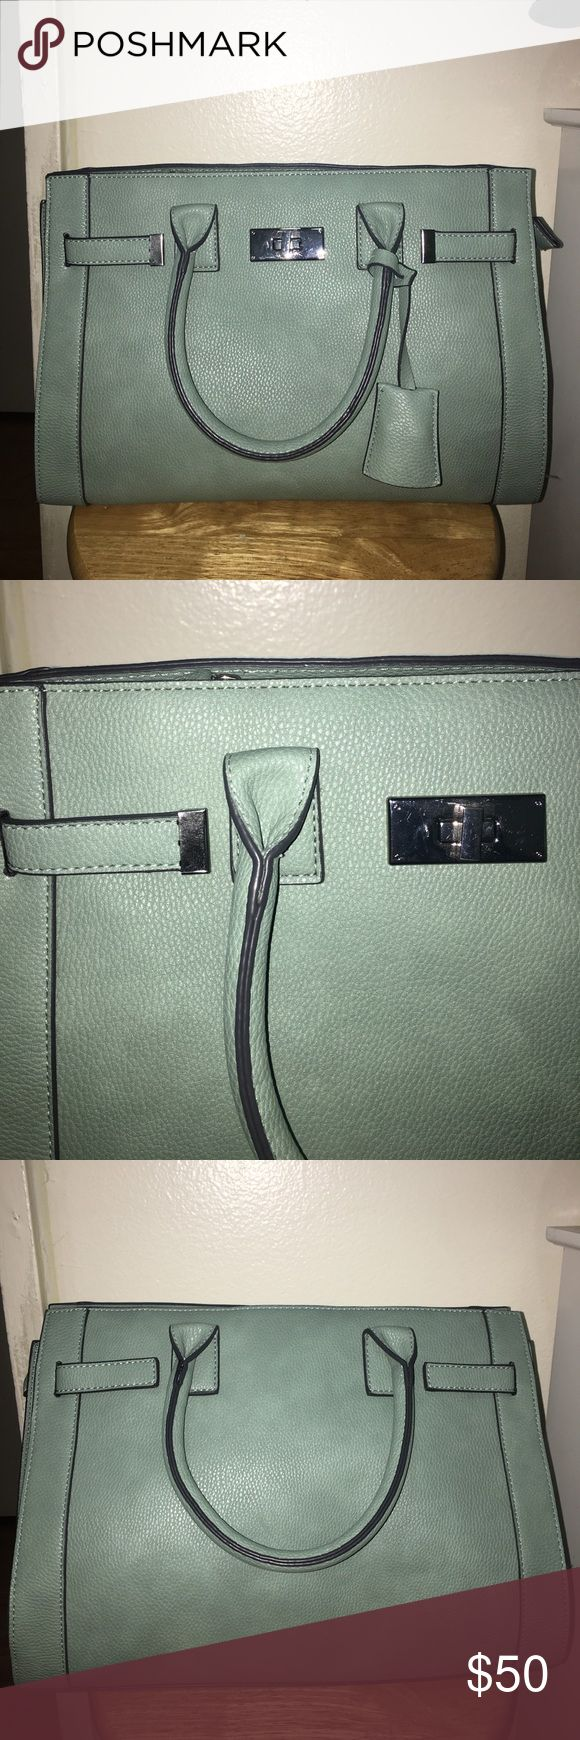 Brand new light green handbag for sale New good material never worn Bags